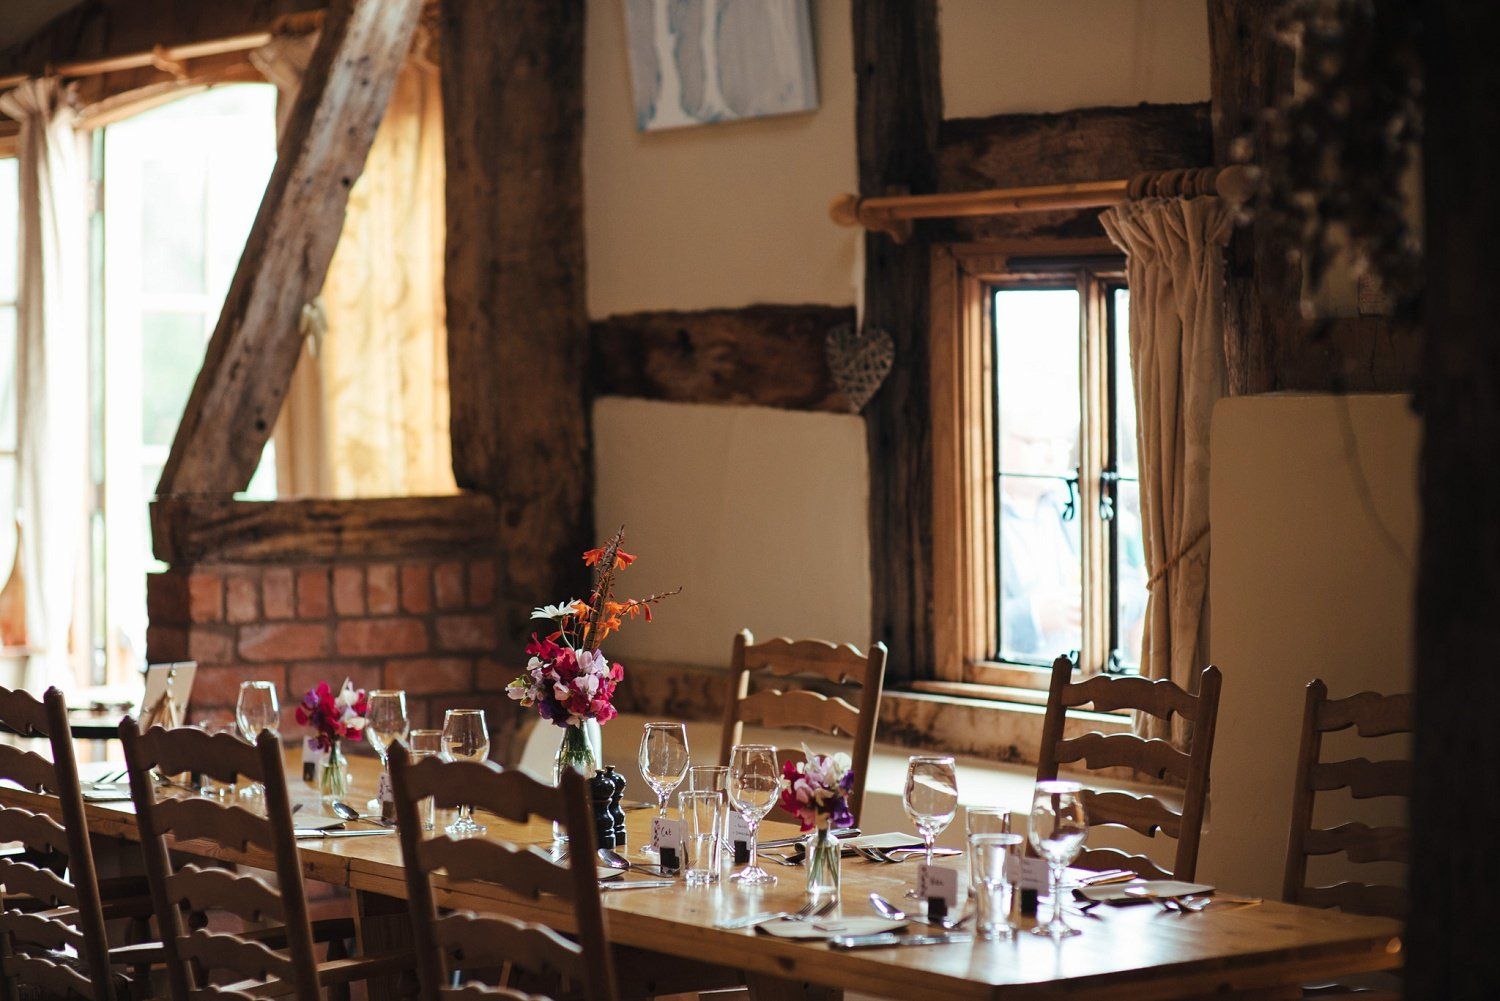 Flower wedding decorations by Issy & Bella at the Cider Barn